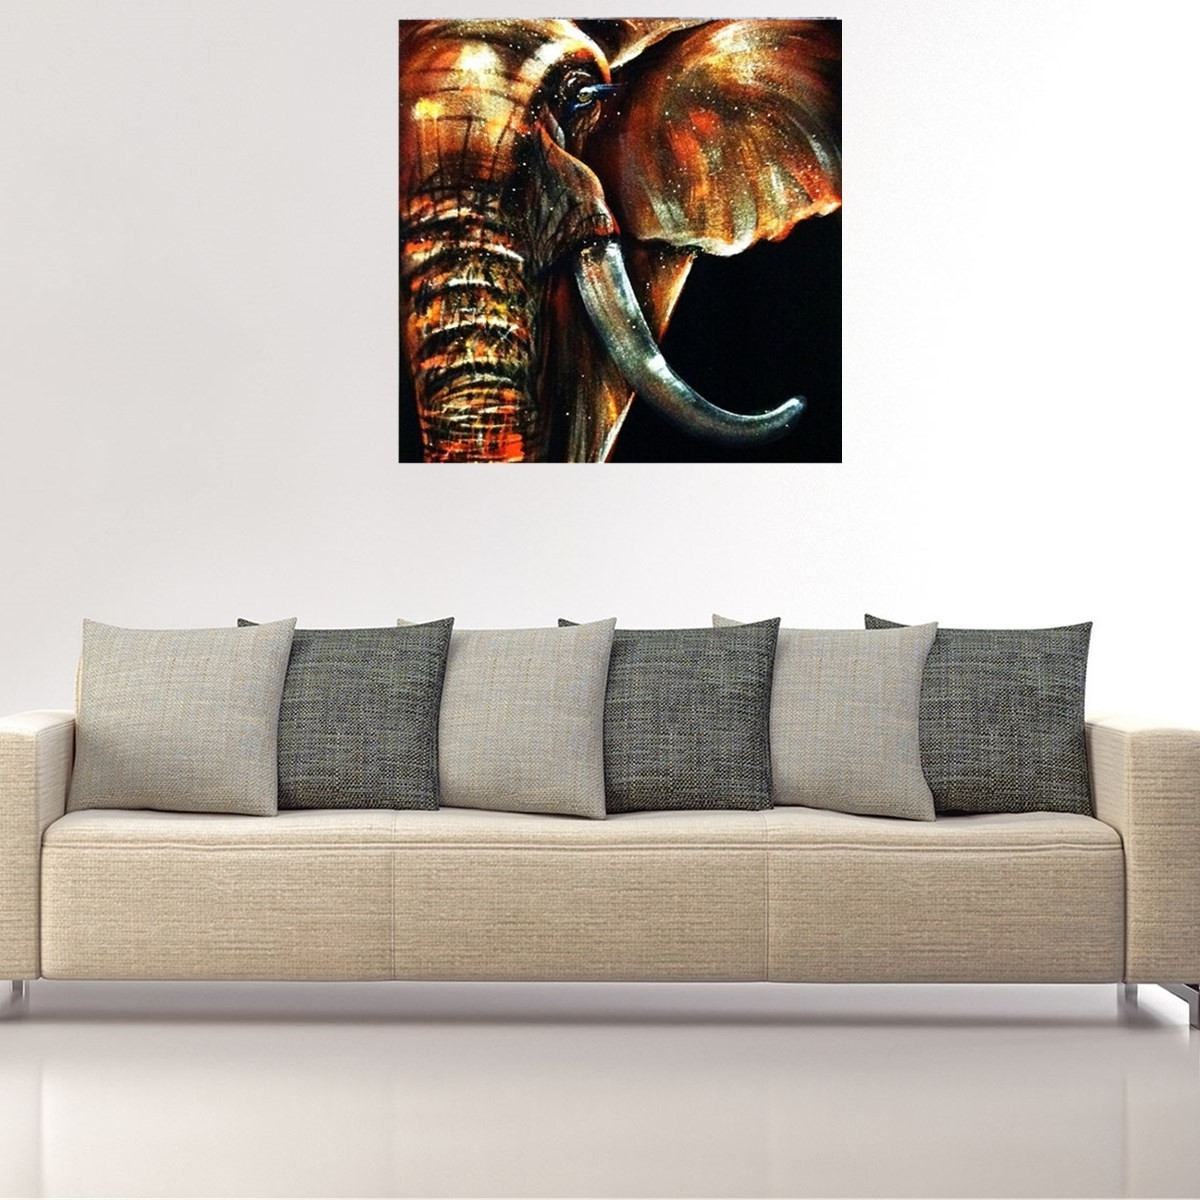 50X50Cm Modern Abstract Huge Elephant Wall Art Decor Oil Painting Regarding Fashionable Abstract Elephant Wall Art (View 12 of 15)